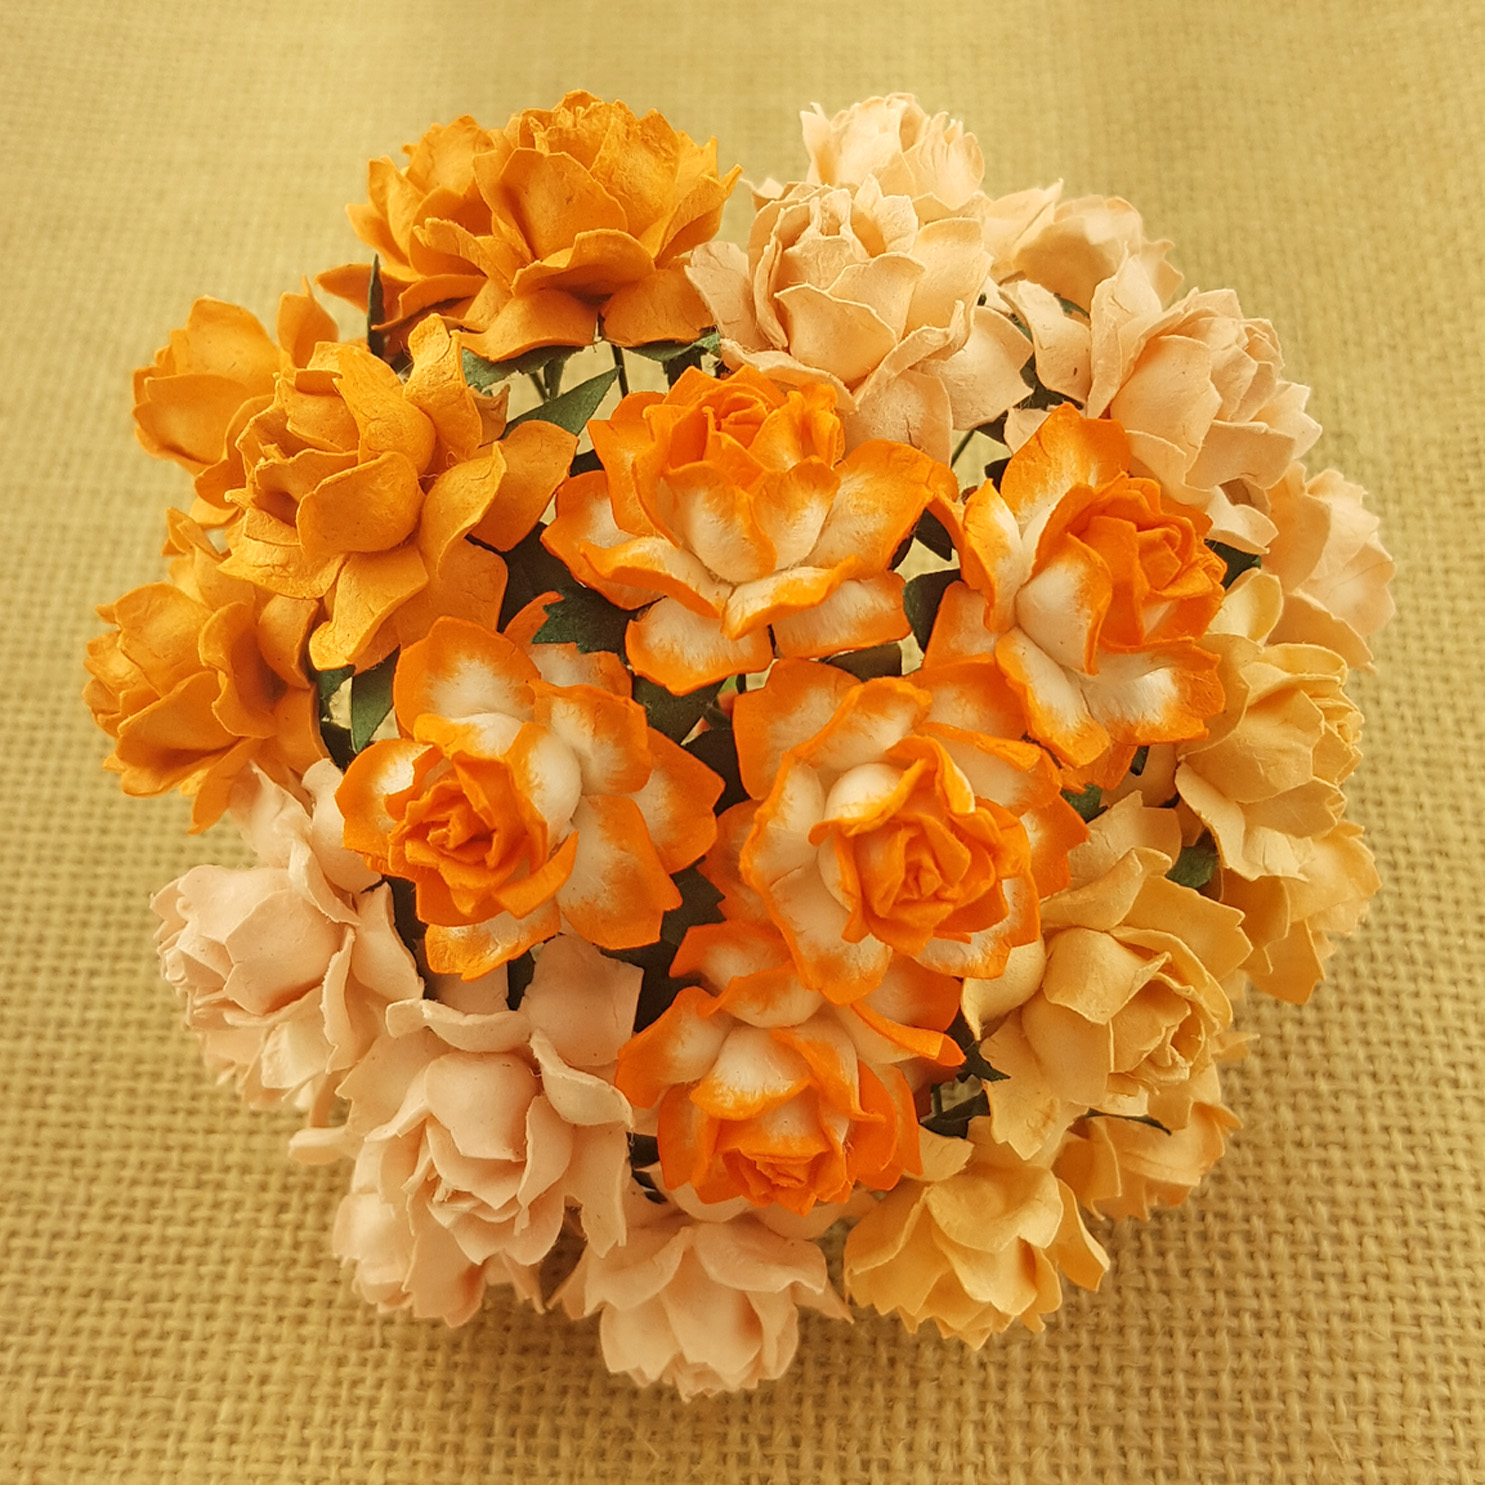 50 MIXED PEACH/ORANGE MULBERRY PAPER COTTAGE ROSES - 5 COLOR